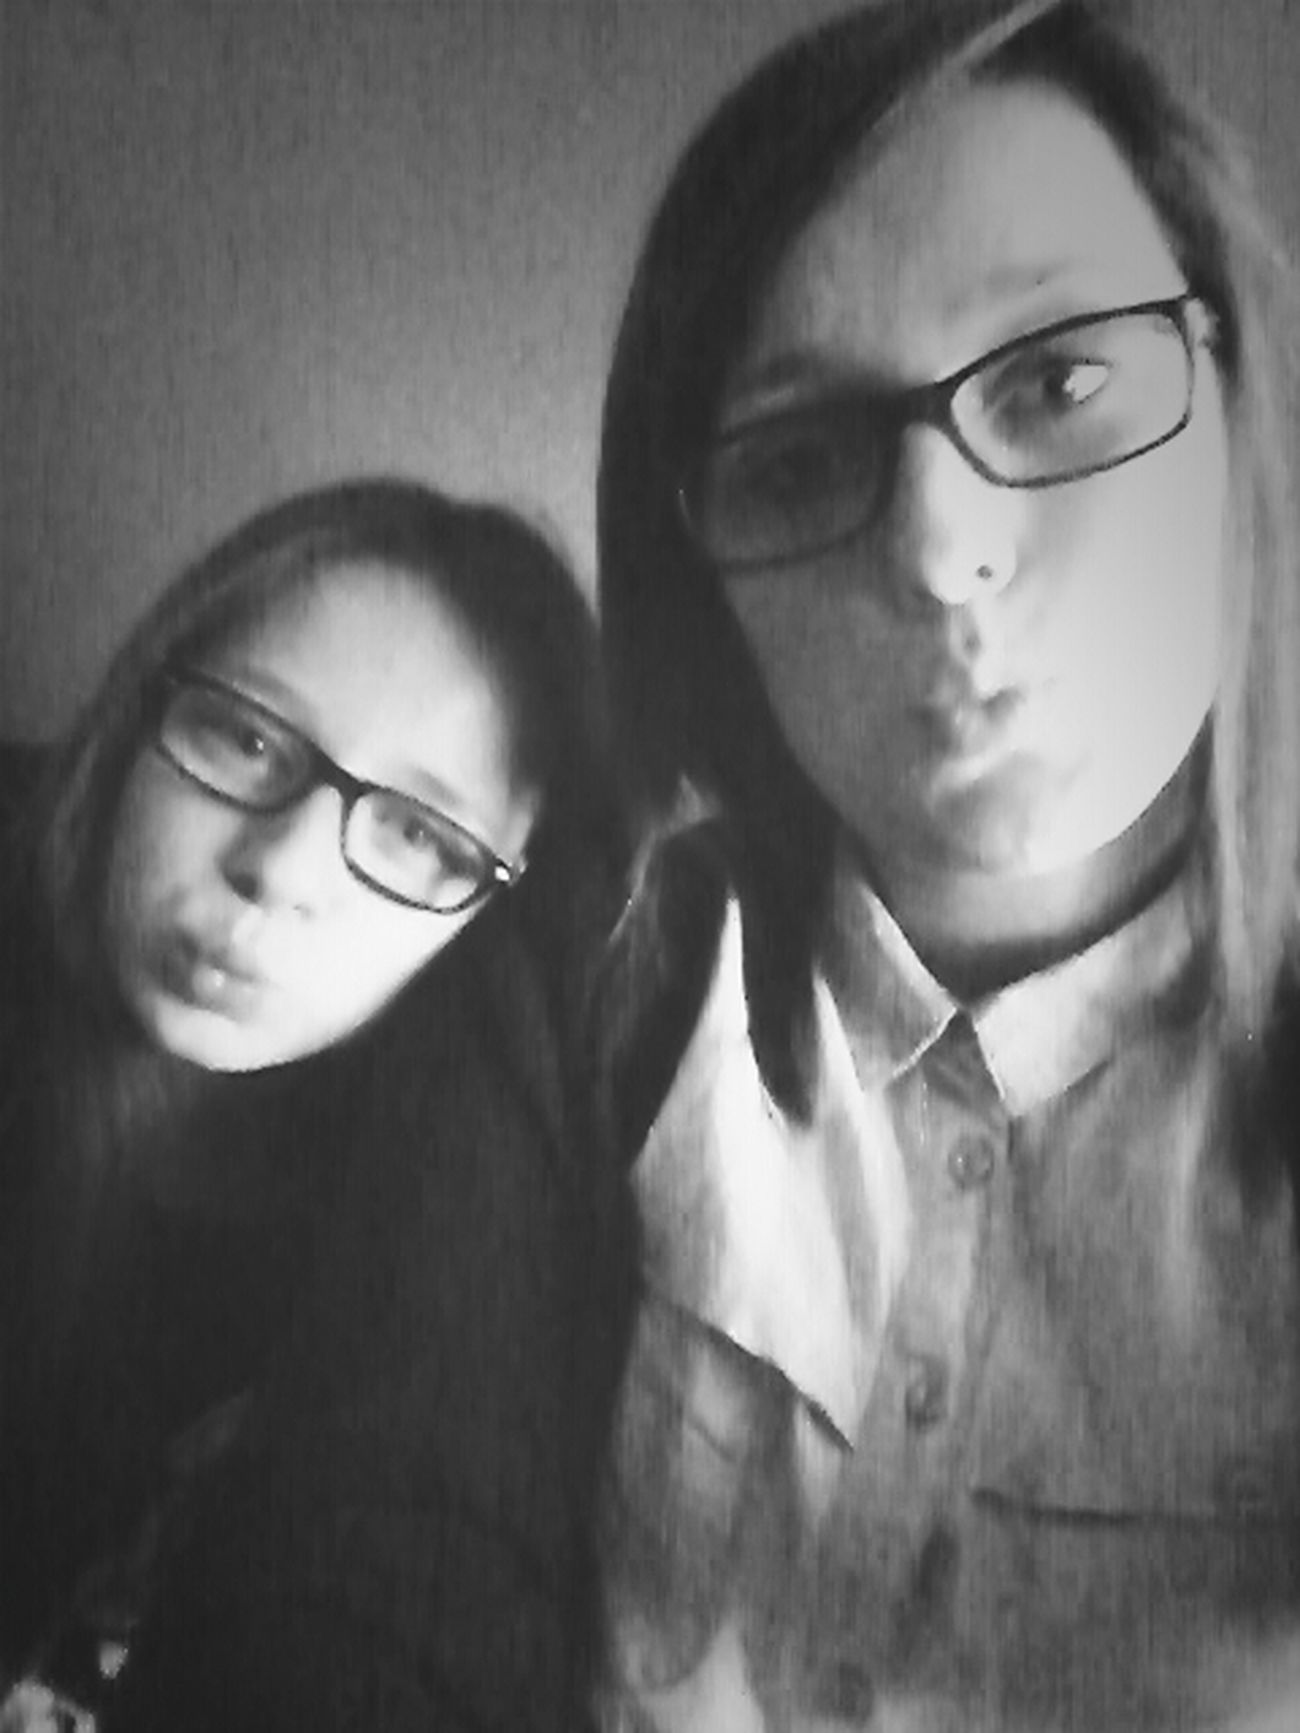 RePicture Family Sistterr❤ Selfie I Love My Sister ♡♥